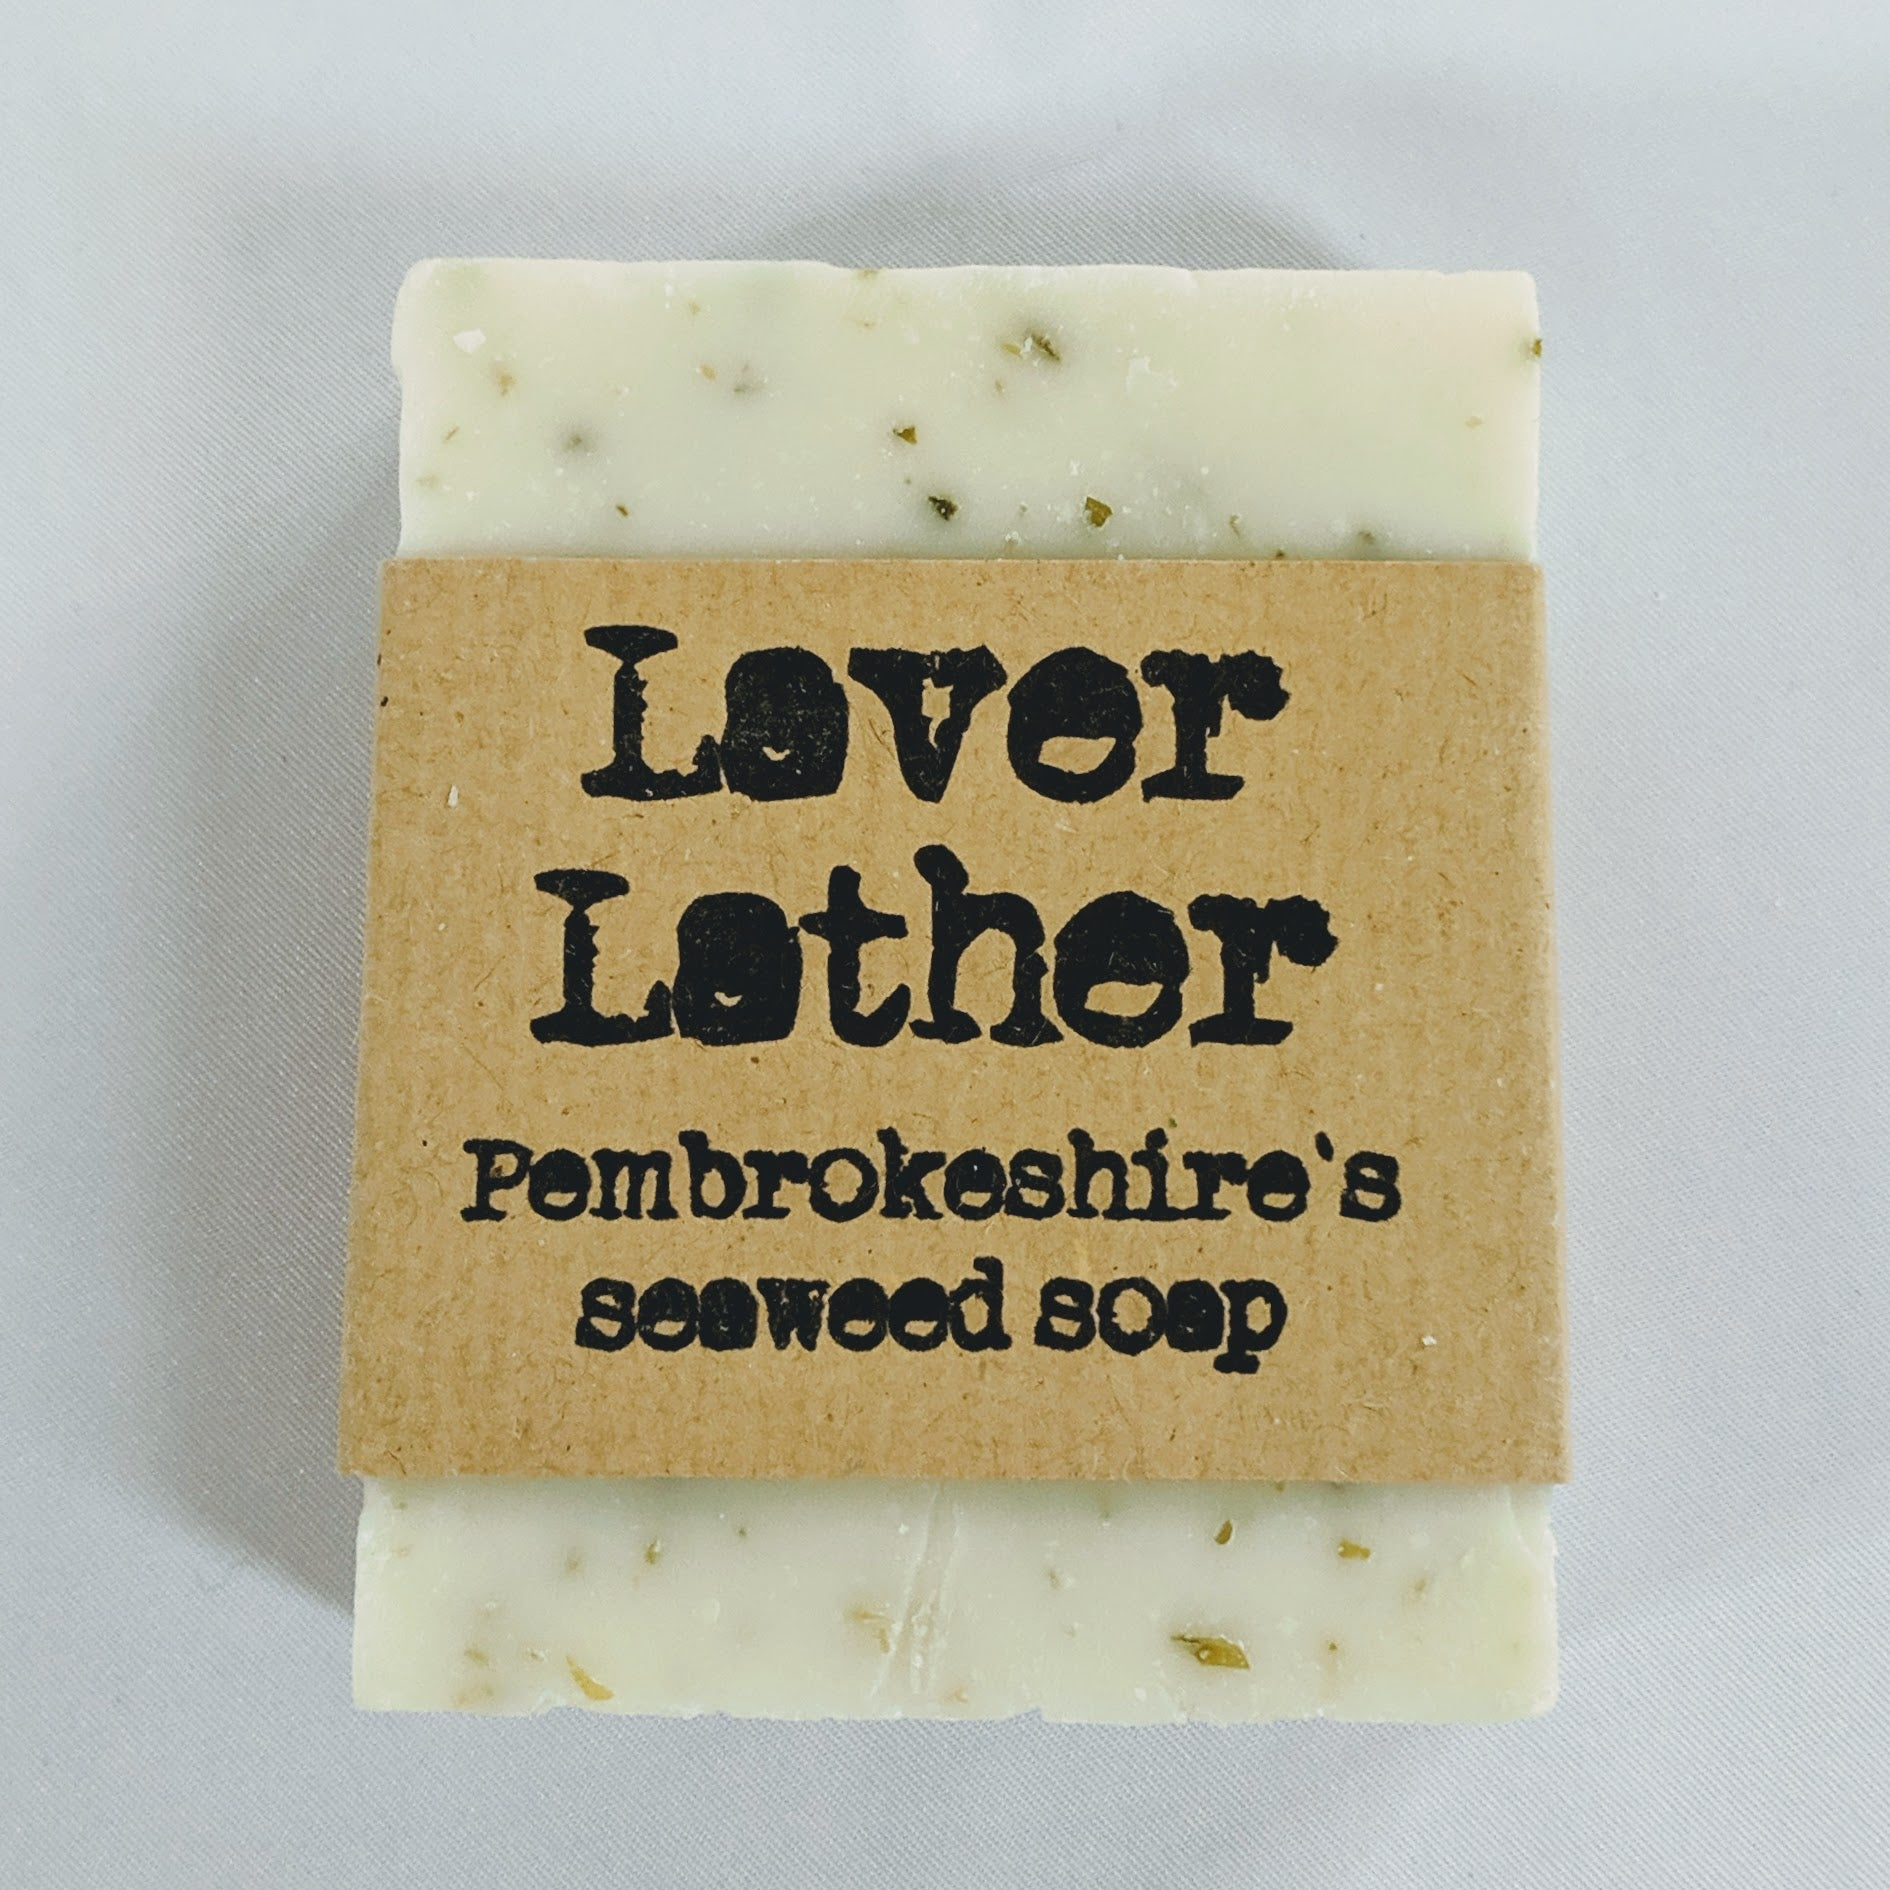 Laver lather handmade soap